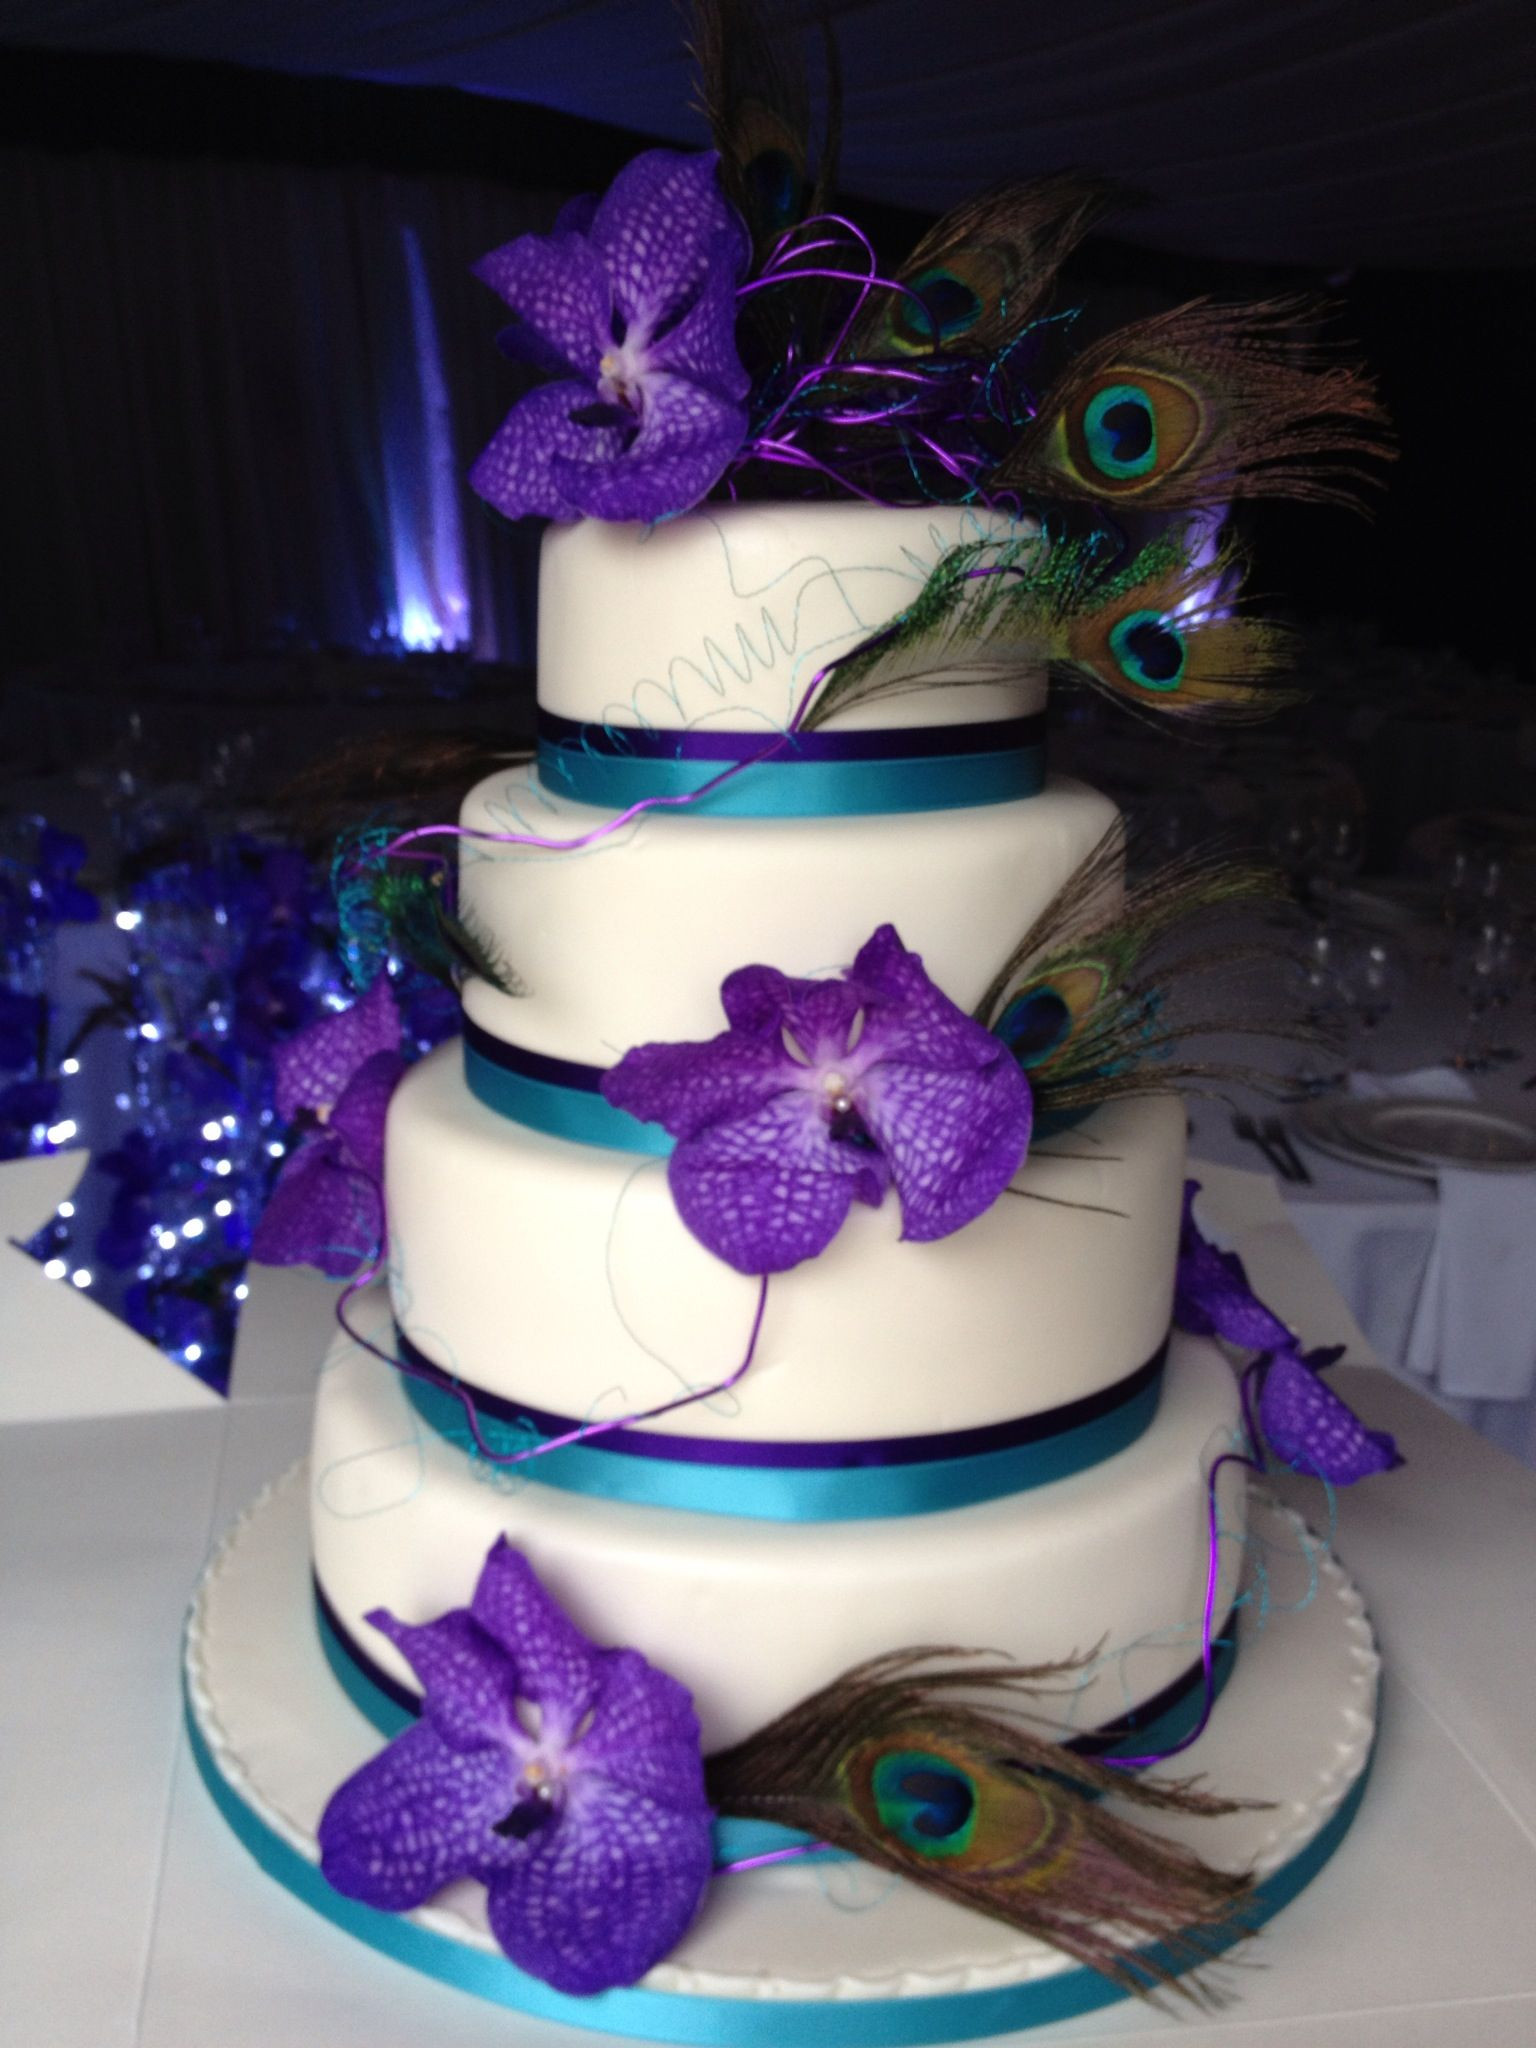 Turquoise And Purple Wedding Cakes  Turquoise & Purple Cake without the peacock feathers and